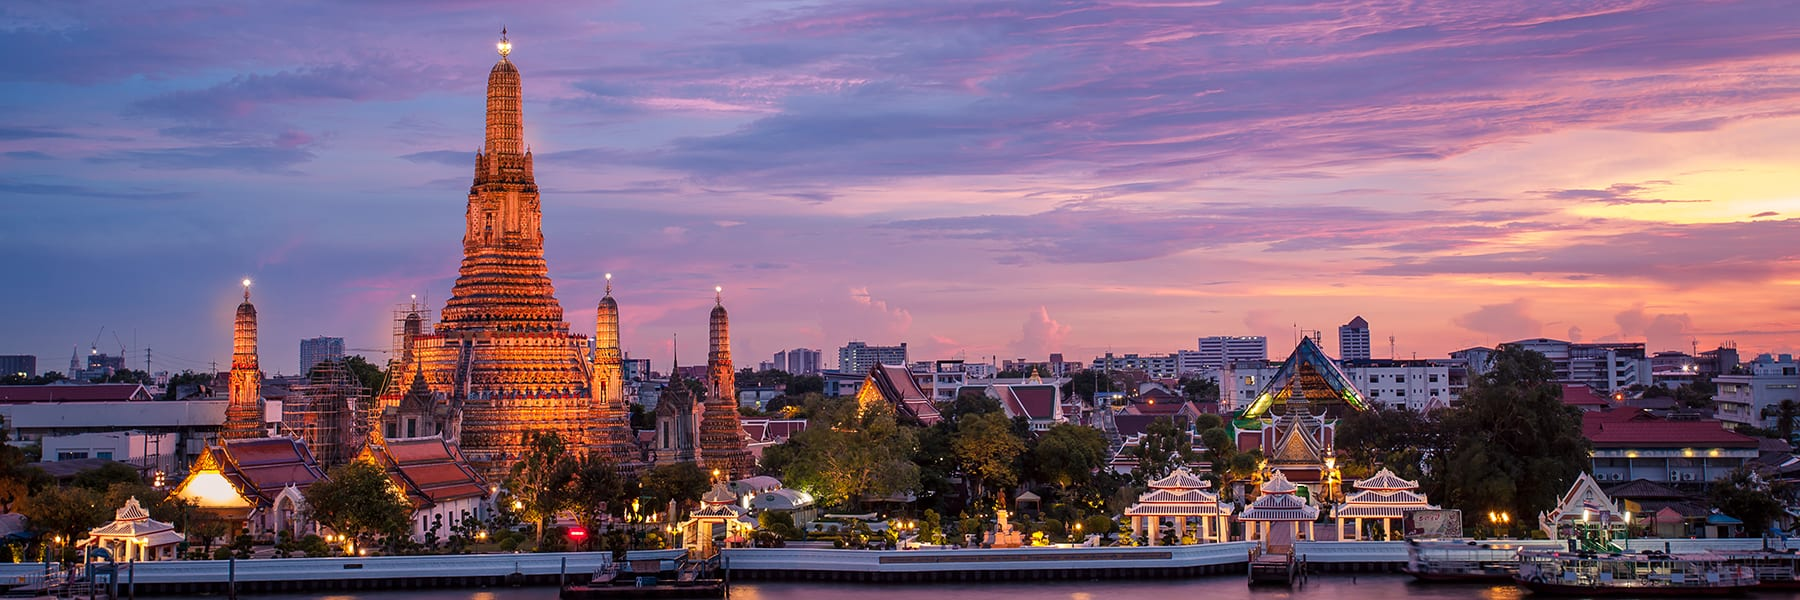 Sunset view of Wat Arun, a Buddhist Temple on the Chaophraya River Bangkok, Thailand